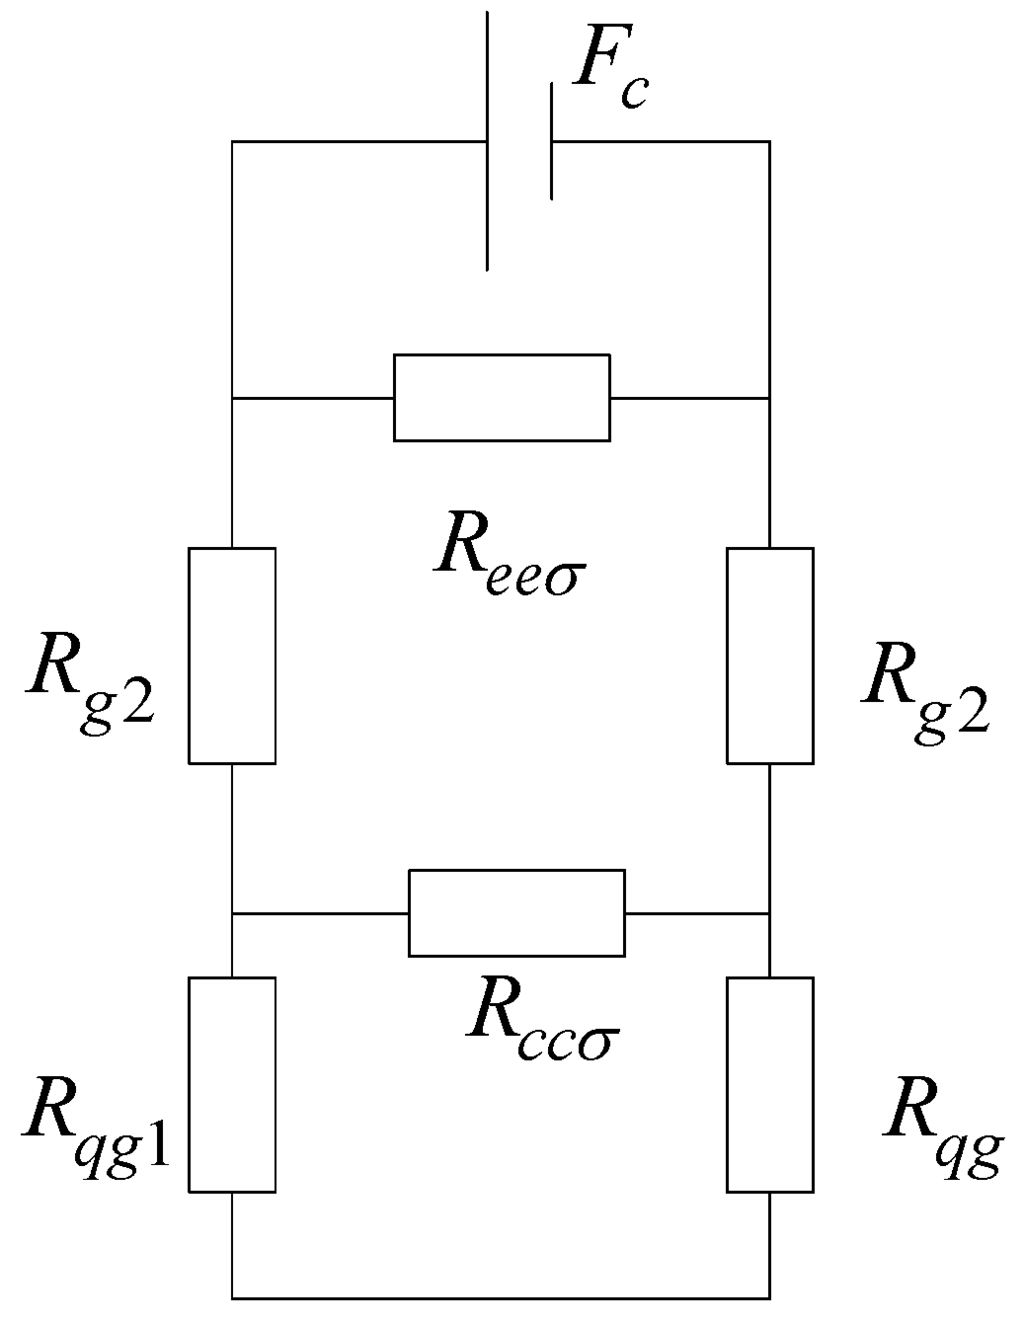 Energies Special Issue Electric And Hybrid Vehicles Figure 1 Simplified Hev Vehicle Block Diagram Figures Graphical Abstract Open